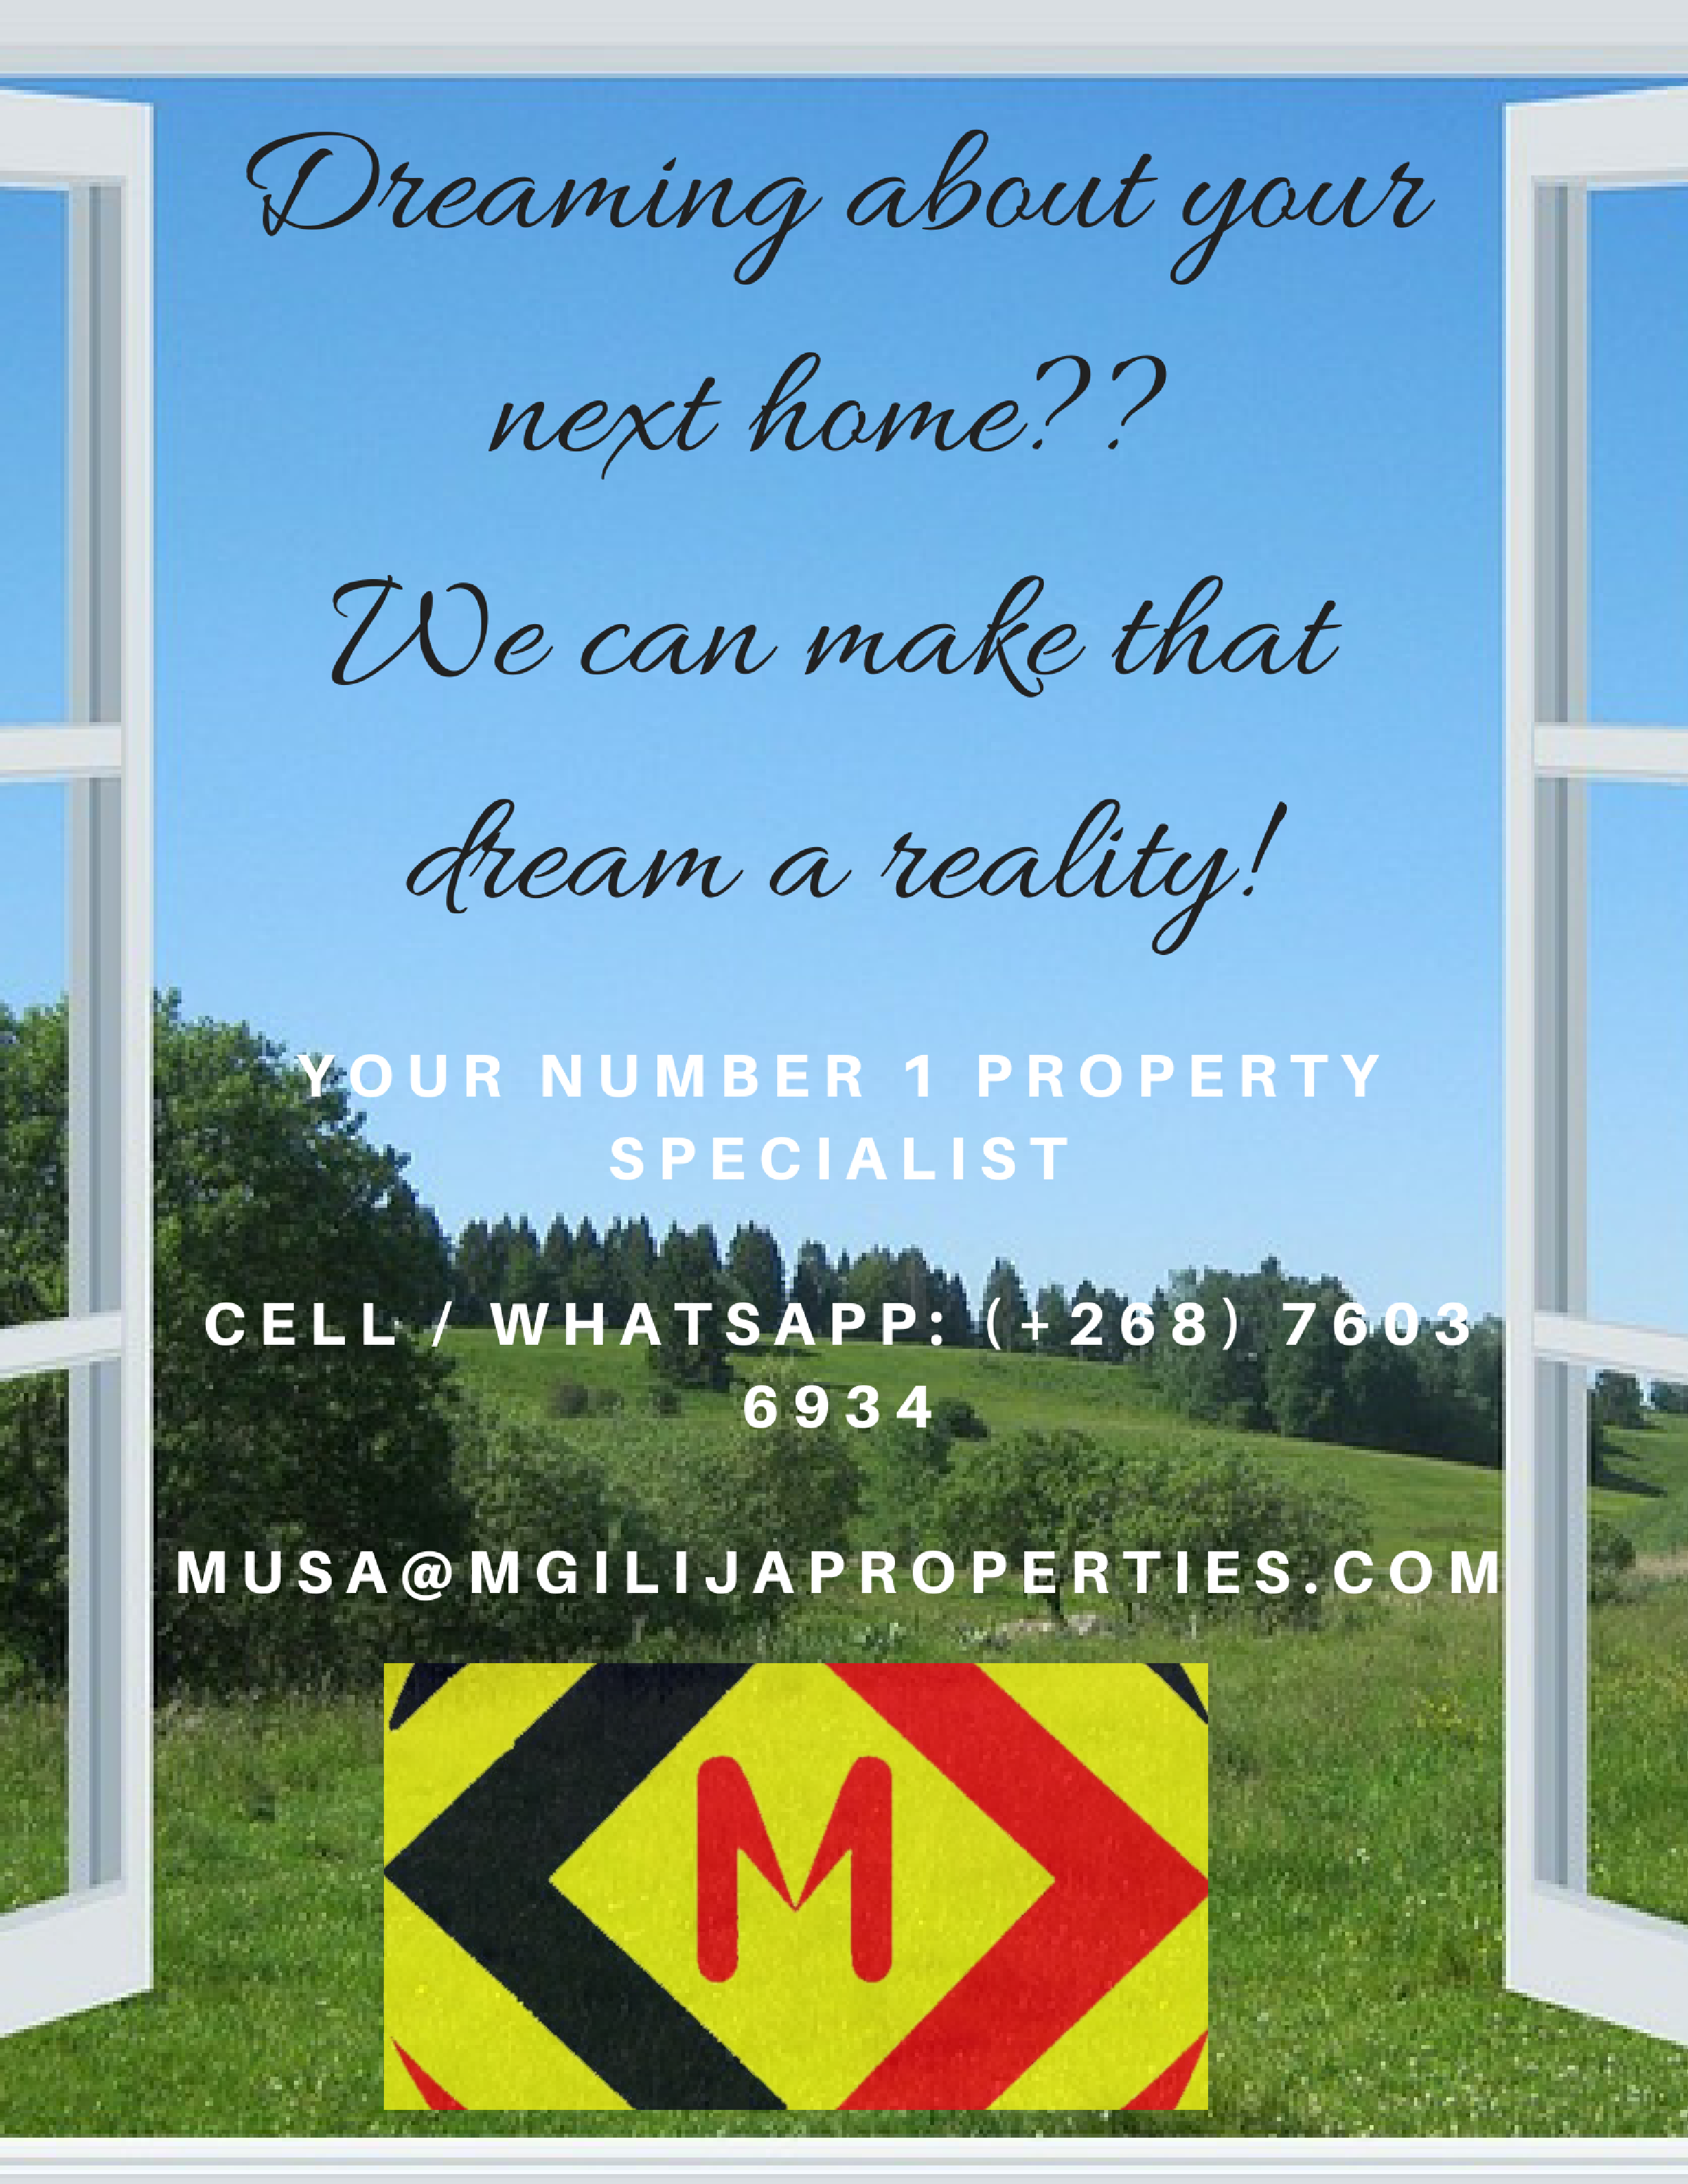 PROPERTY IS OUR BUSINESS